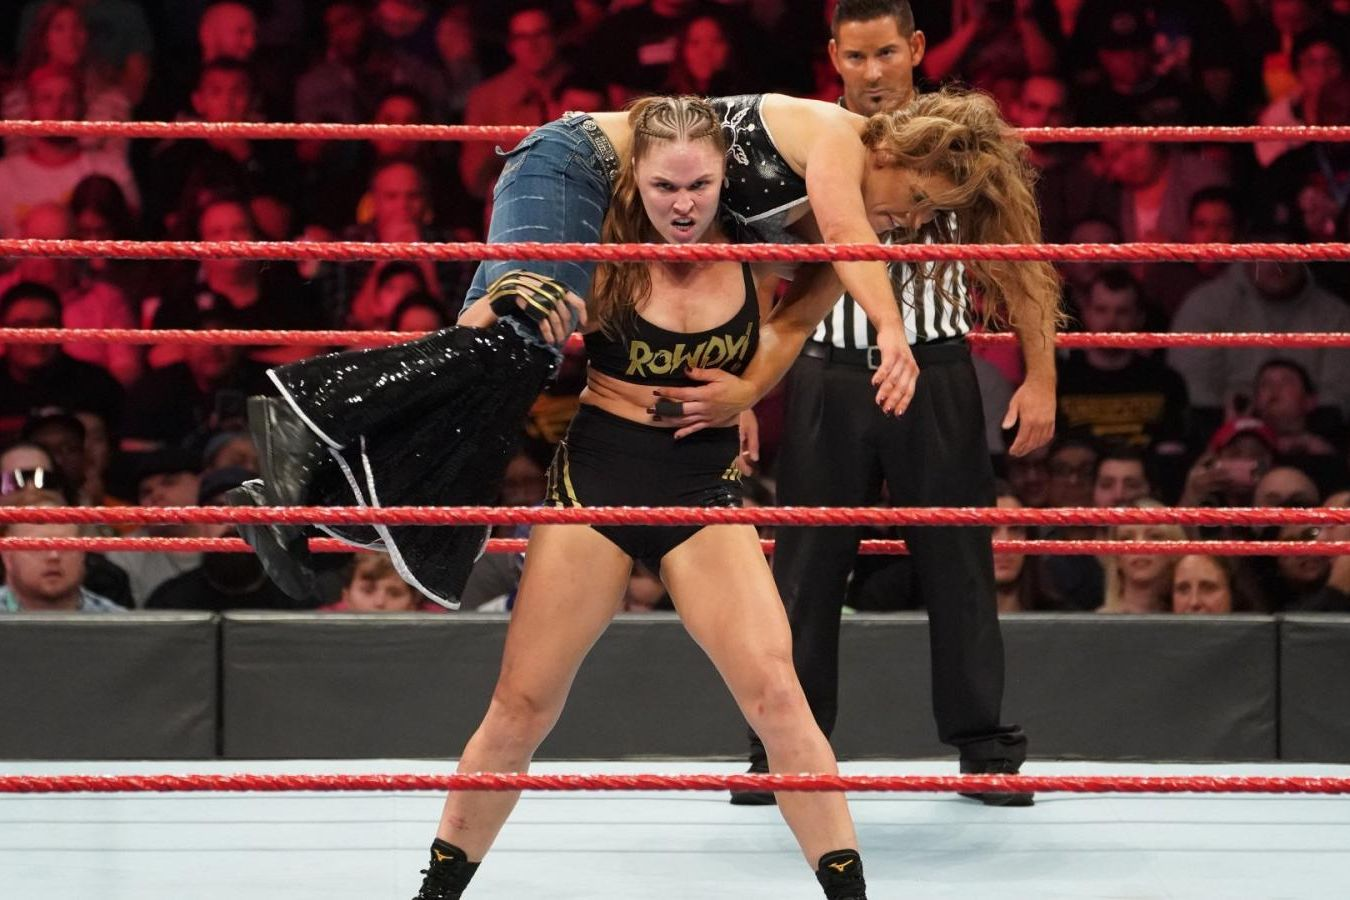 Ronda Rousey and Mickie James on WWE Monday Night Raw